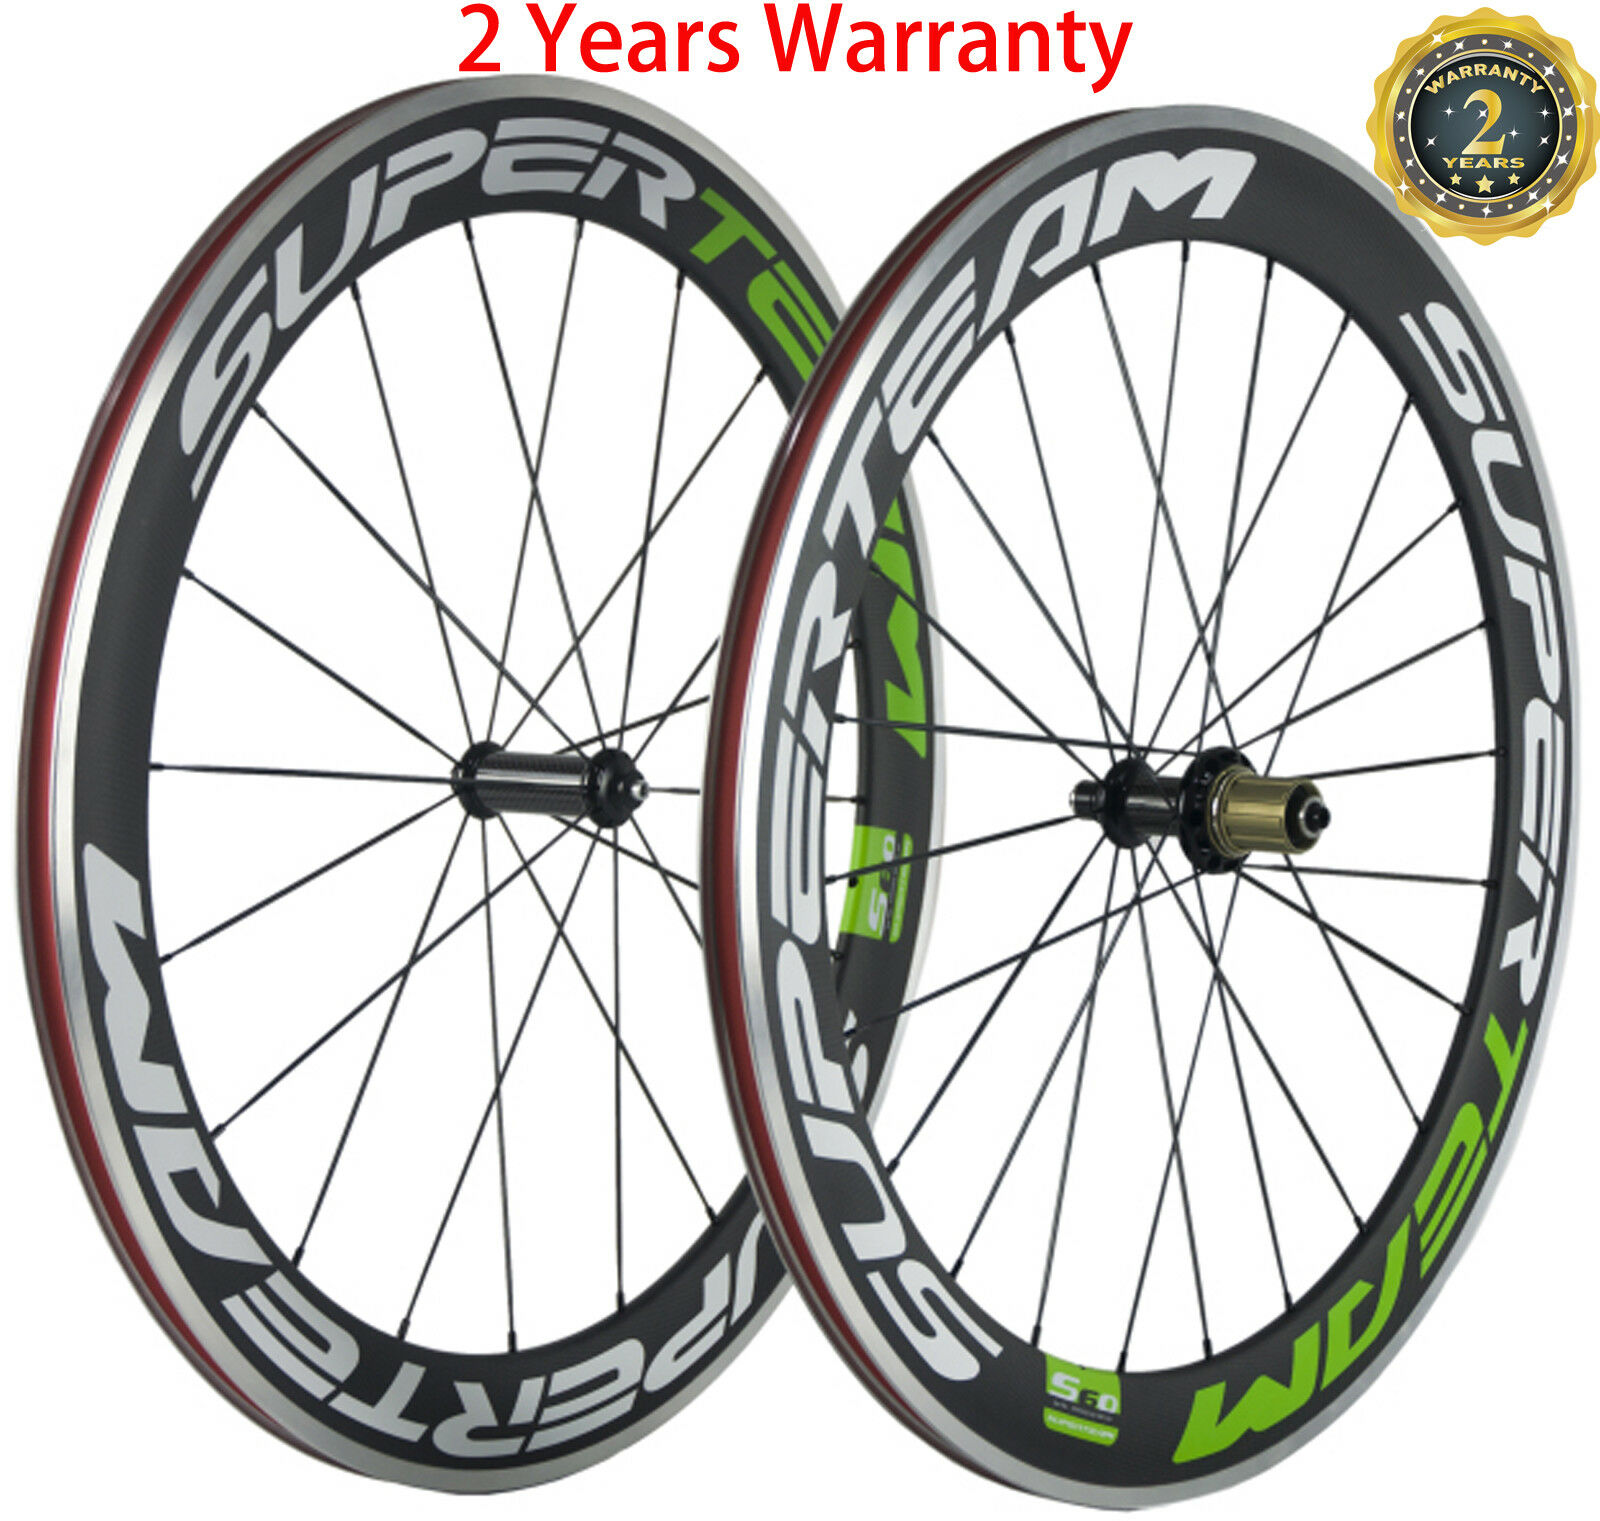 Superteam Carbon Wheels  60 80mm Aluminum Brake Surface Bicycle Wheelset R36 Hub  check out the cheapest